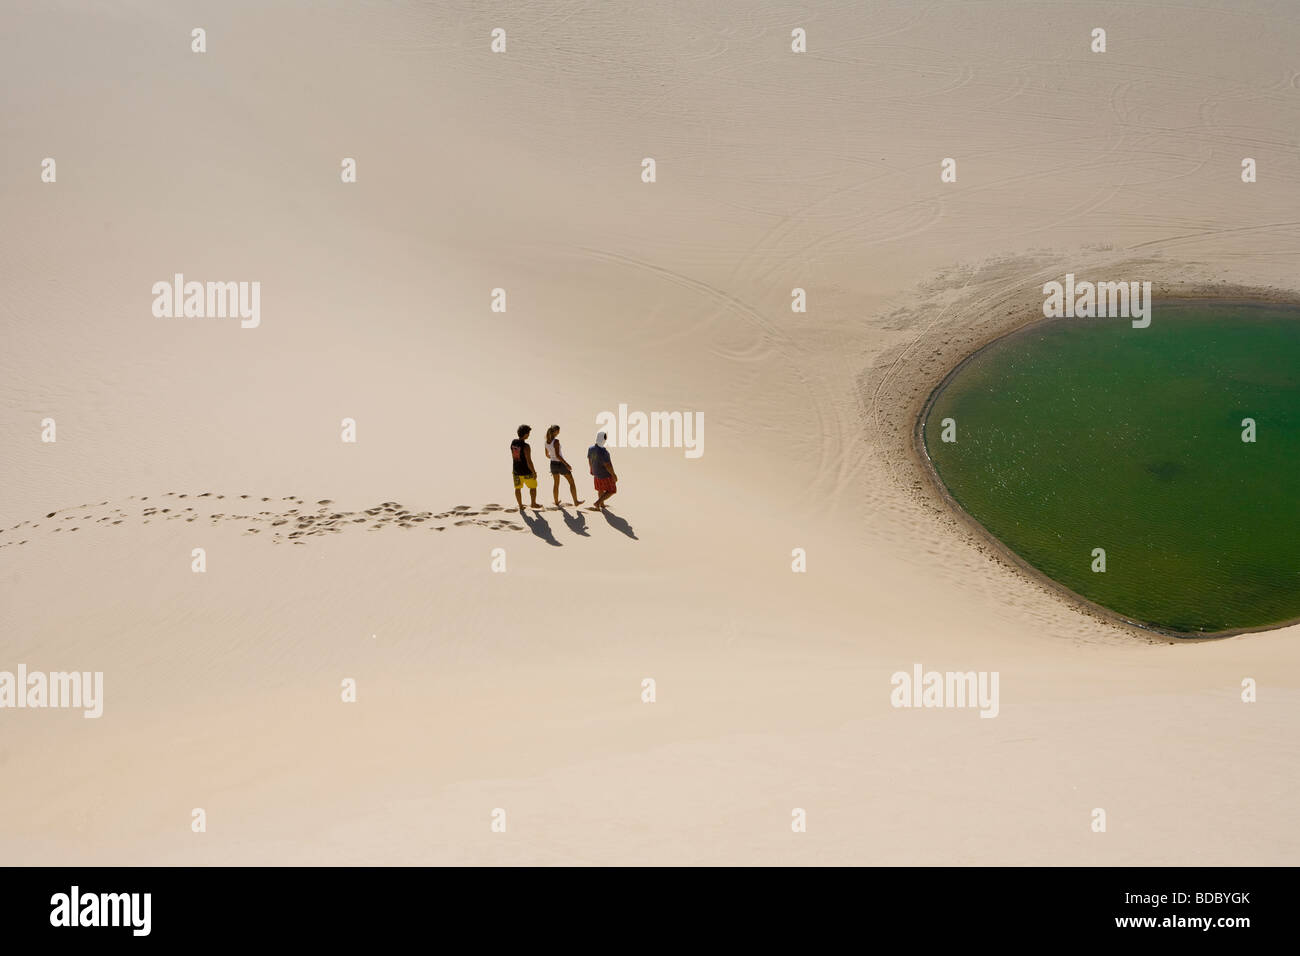 Group of People on Sand Dunes in Mundau Brazil - Stock Image